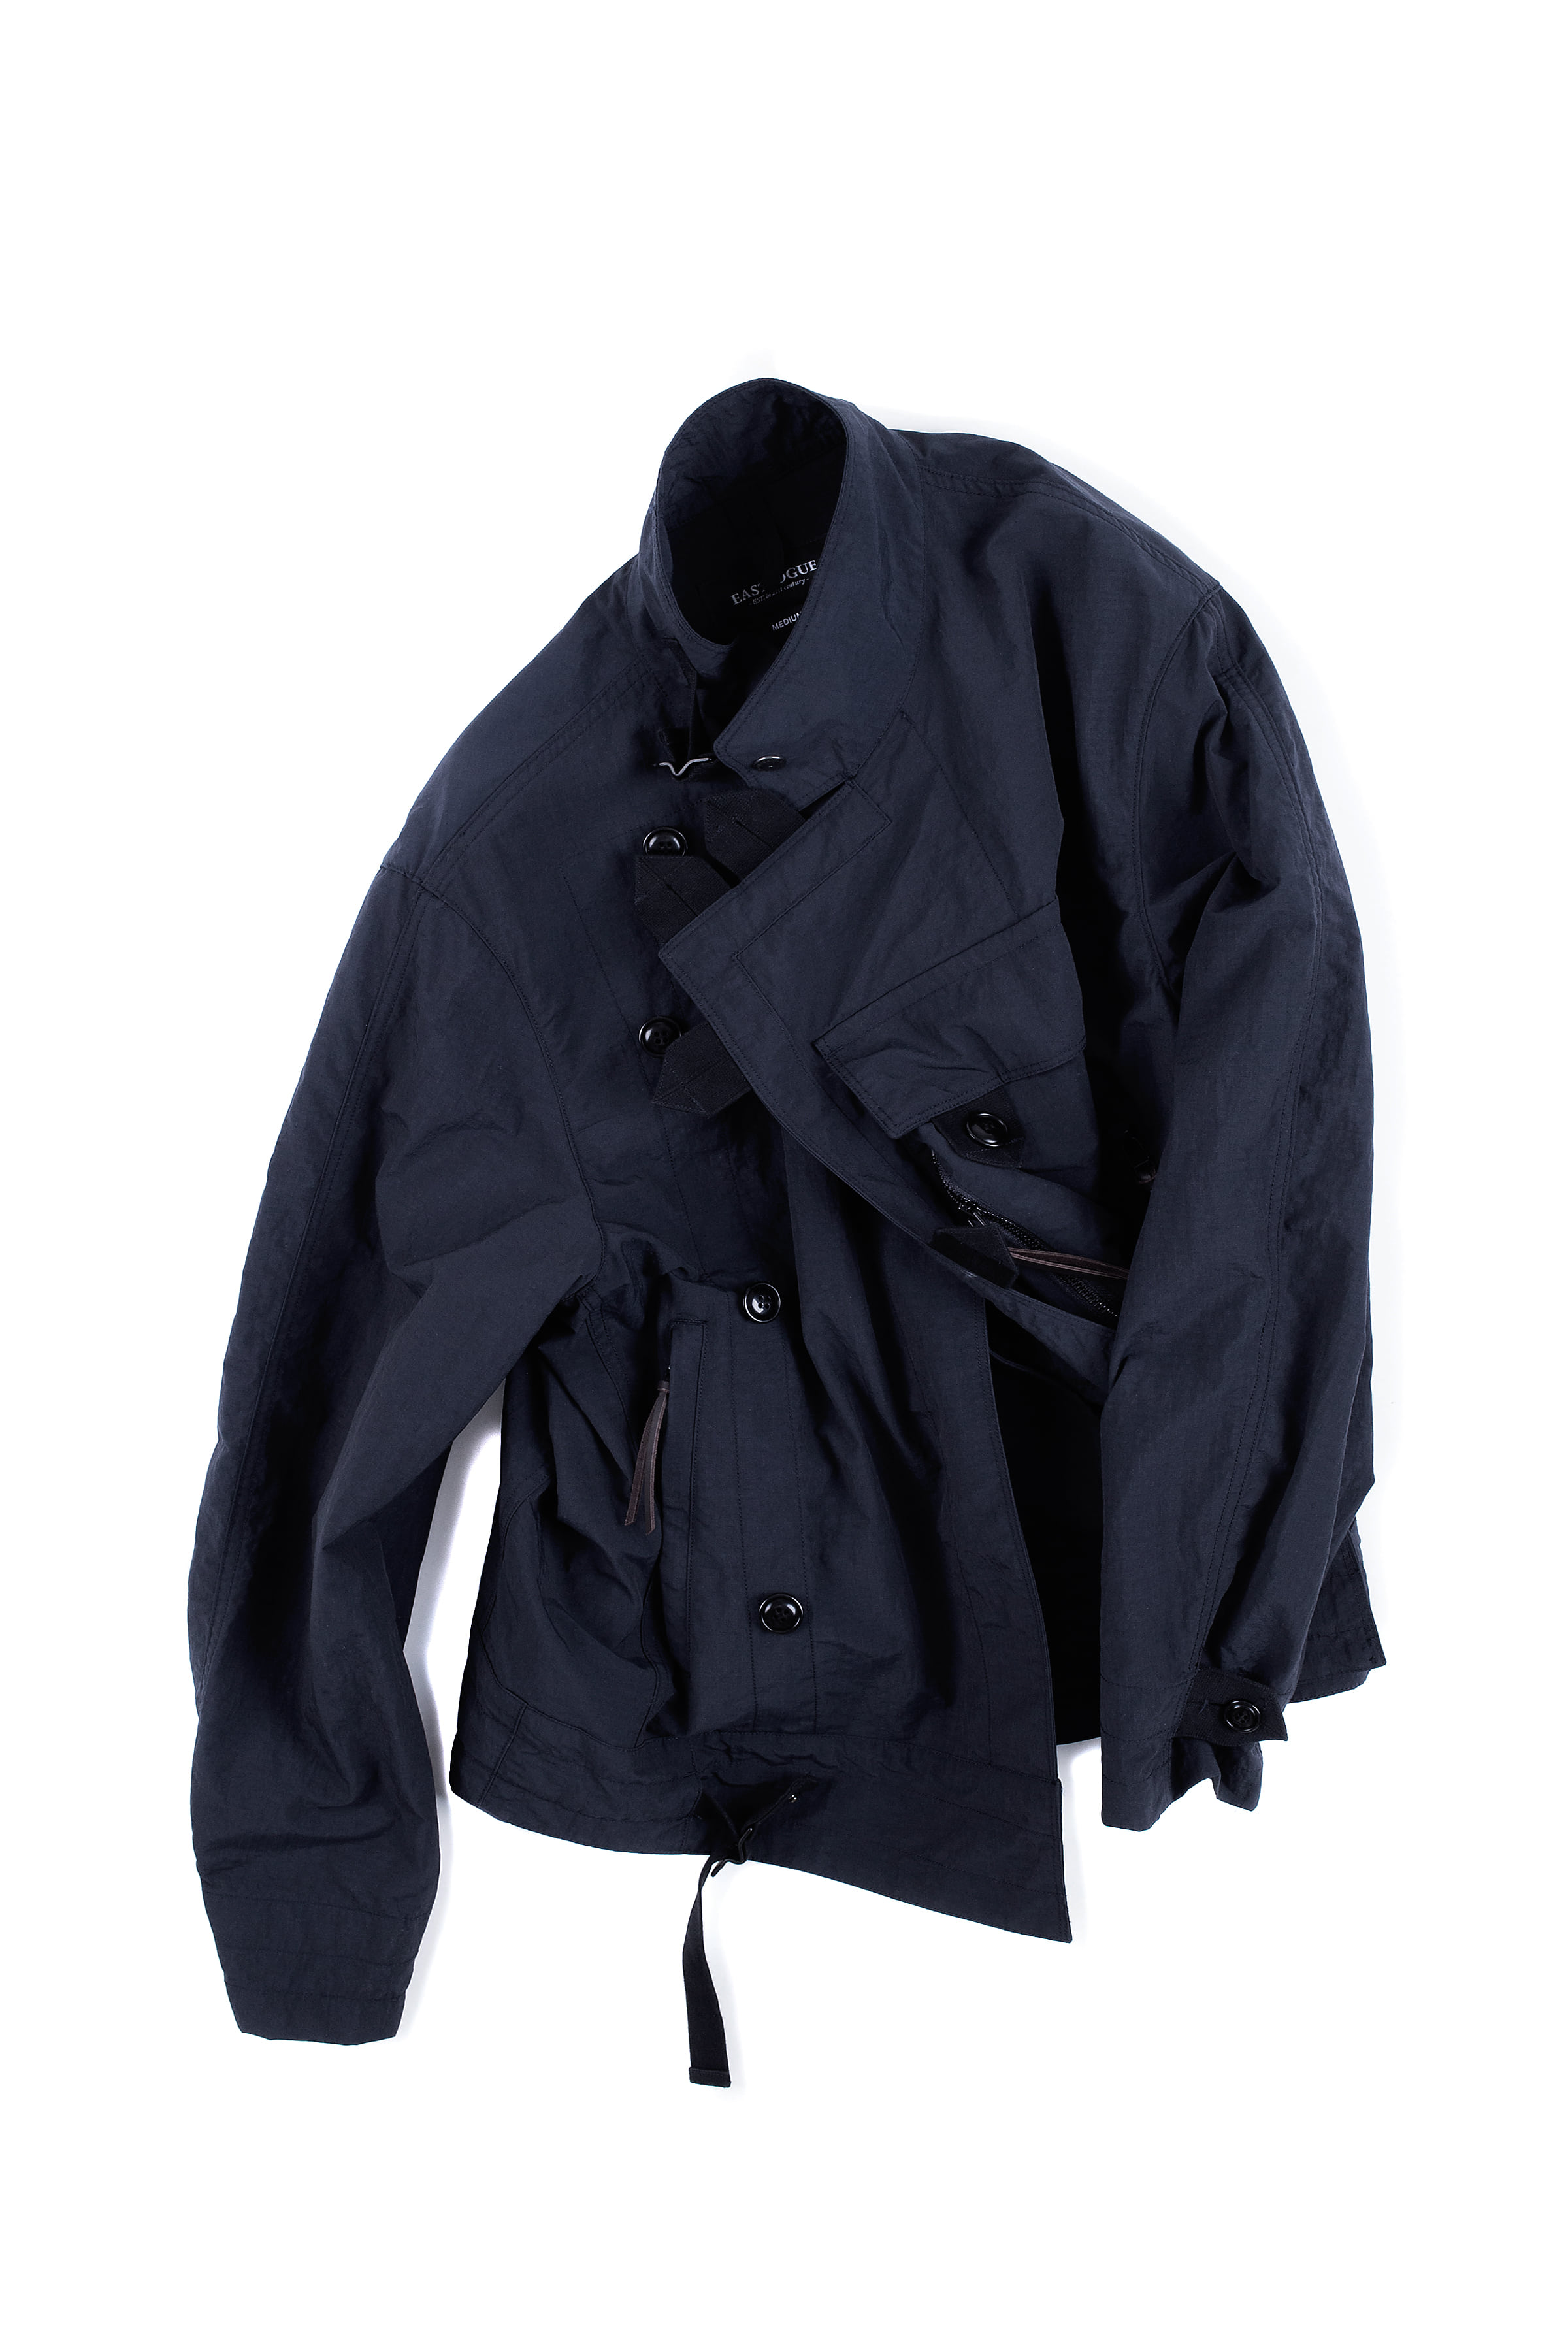 Eastlogue : Motorcycle Jacket (Navy)